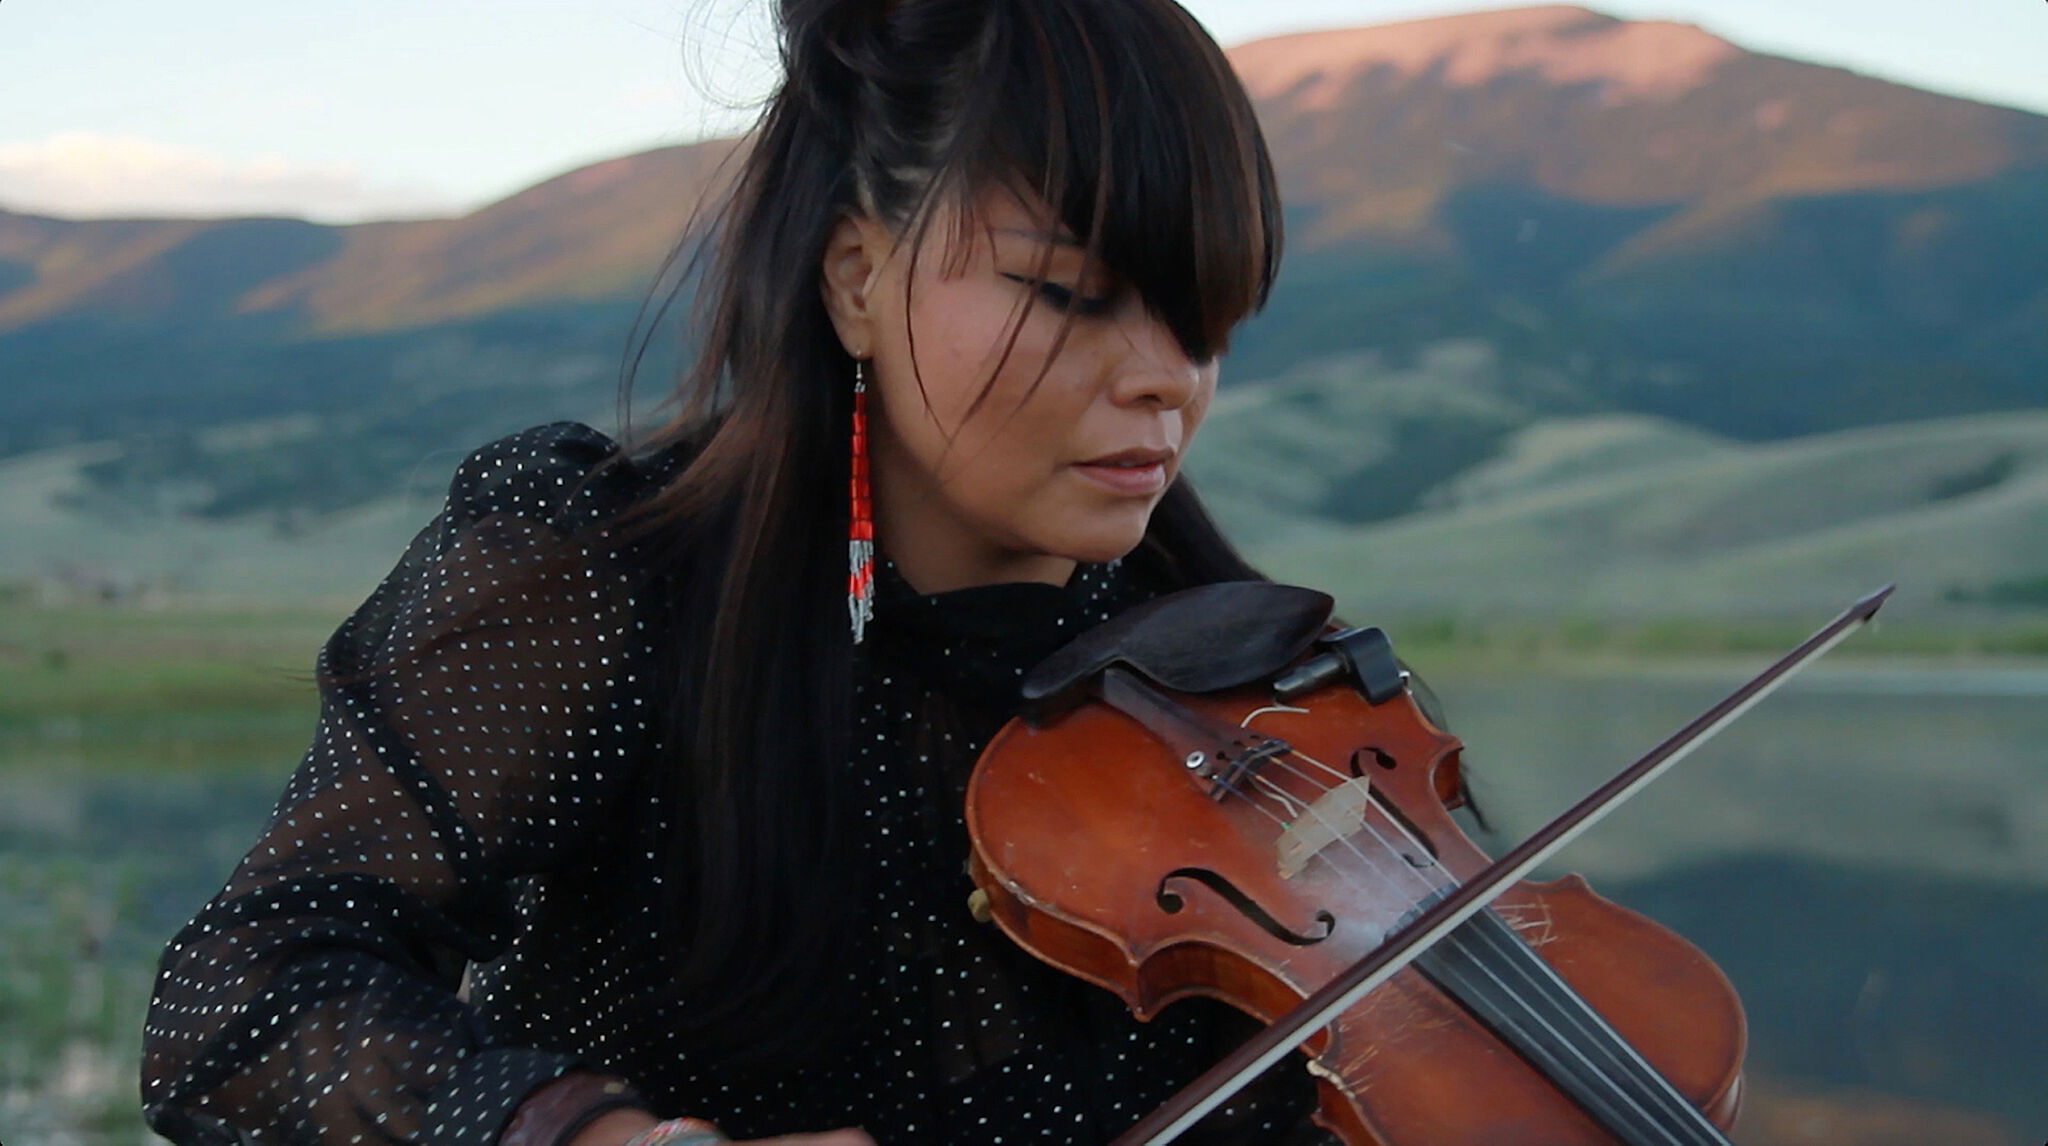 A photograph of a woman playing violin